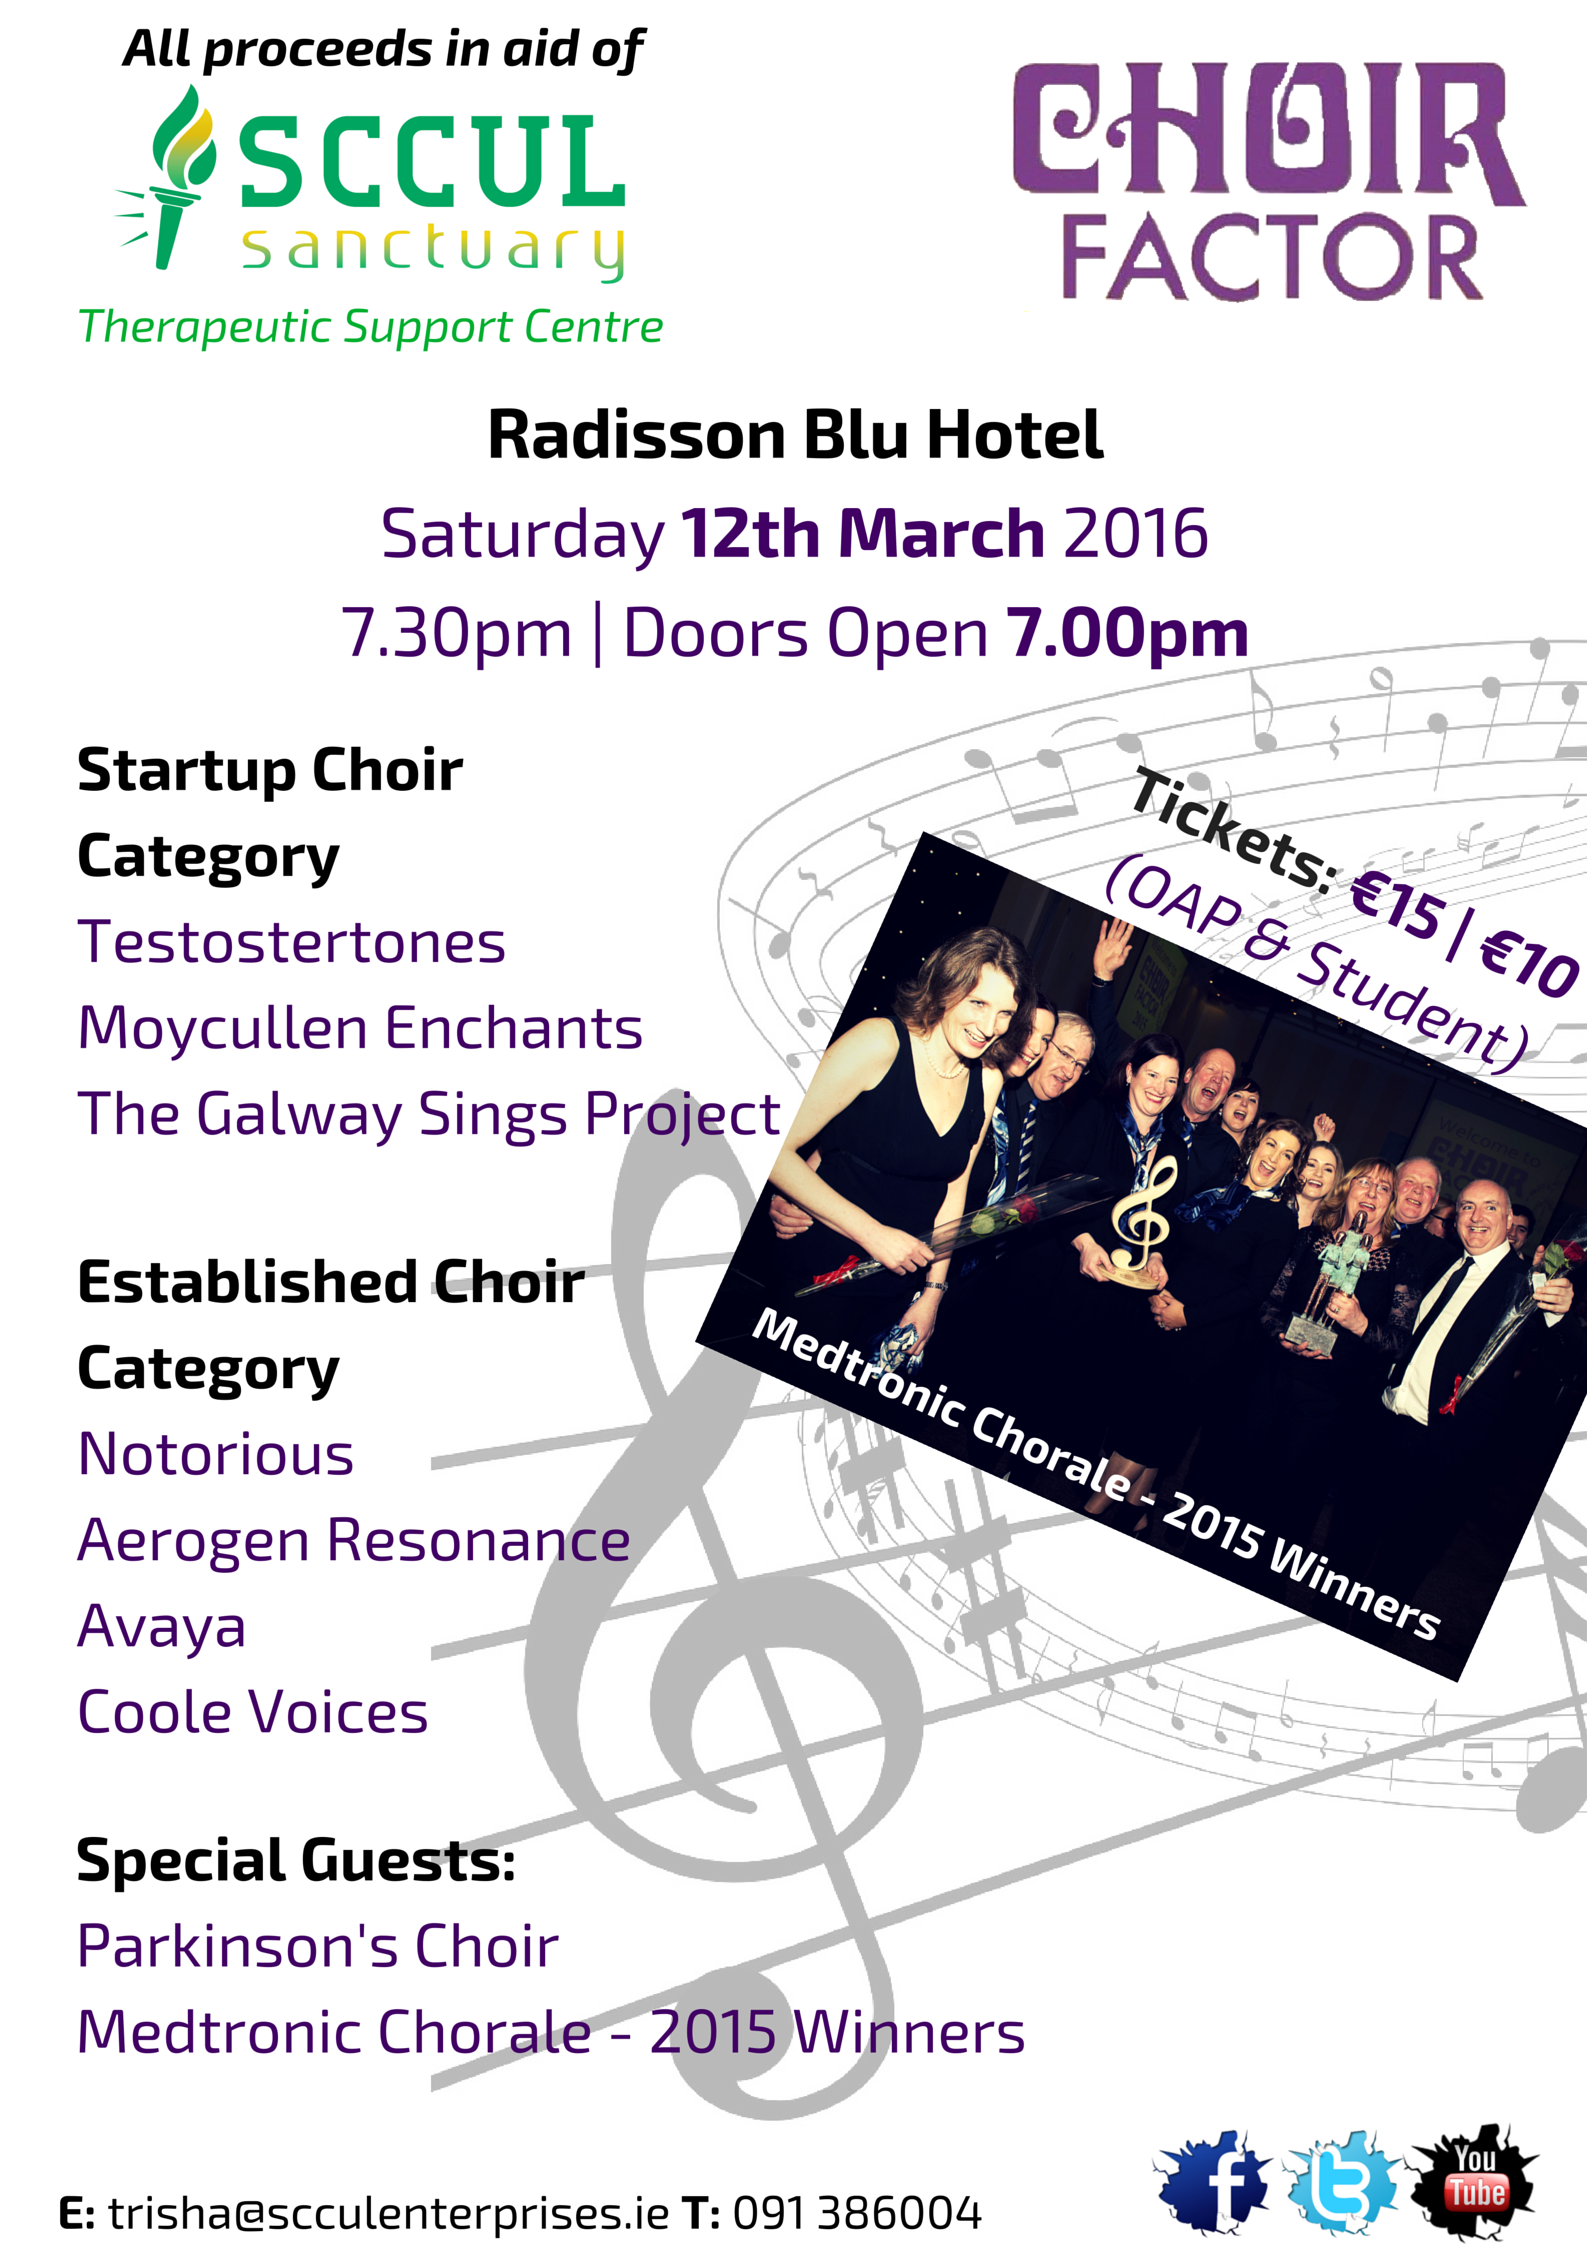 Choir Factor 2015 Galway